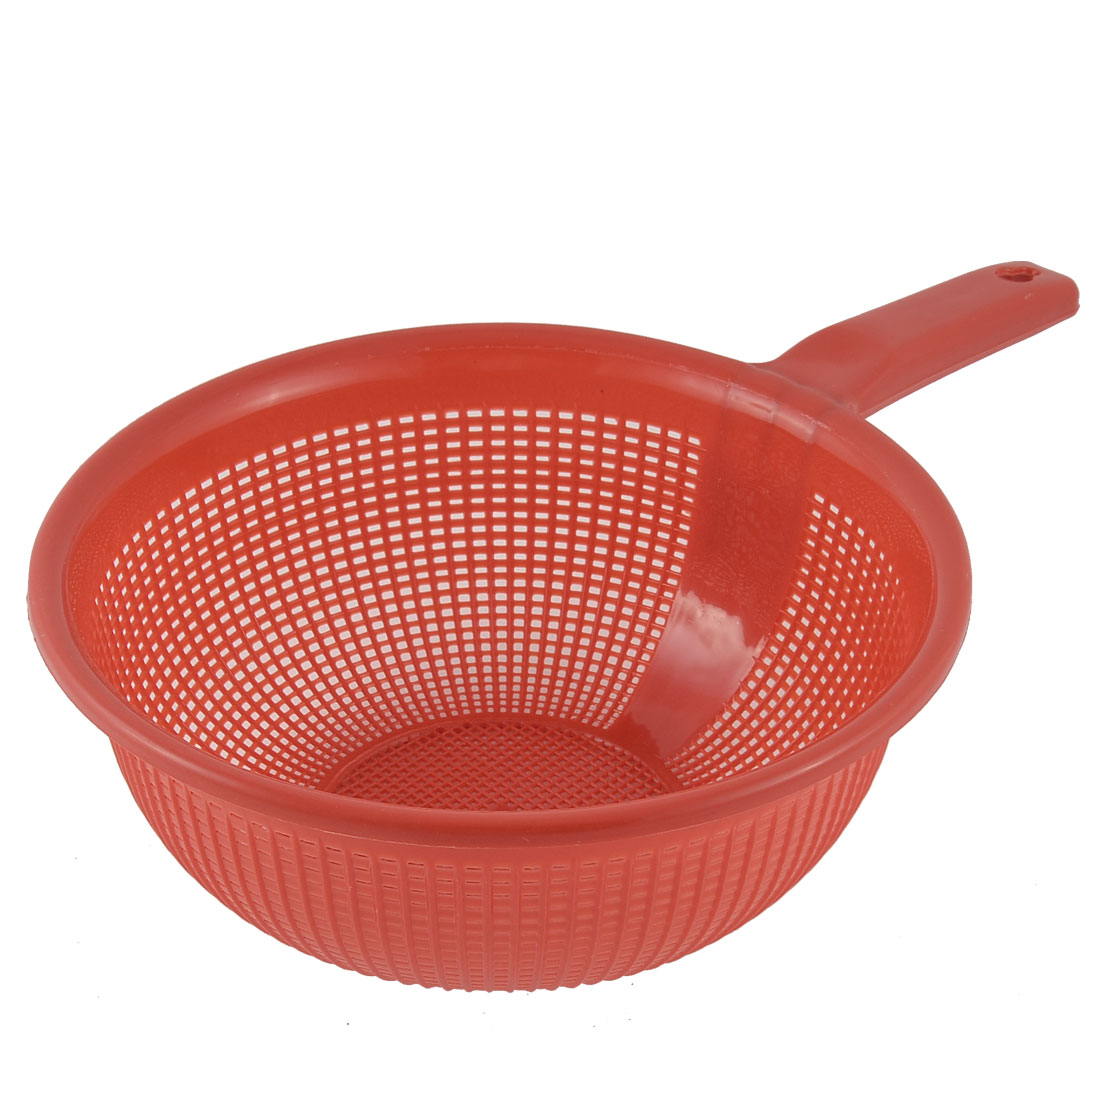 Kitchenware Drain Plastic Round Wash Rice Fruit Vegetable Sieve Basket Red